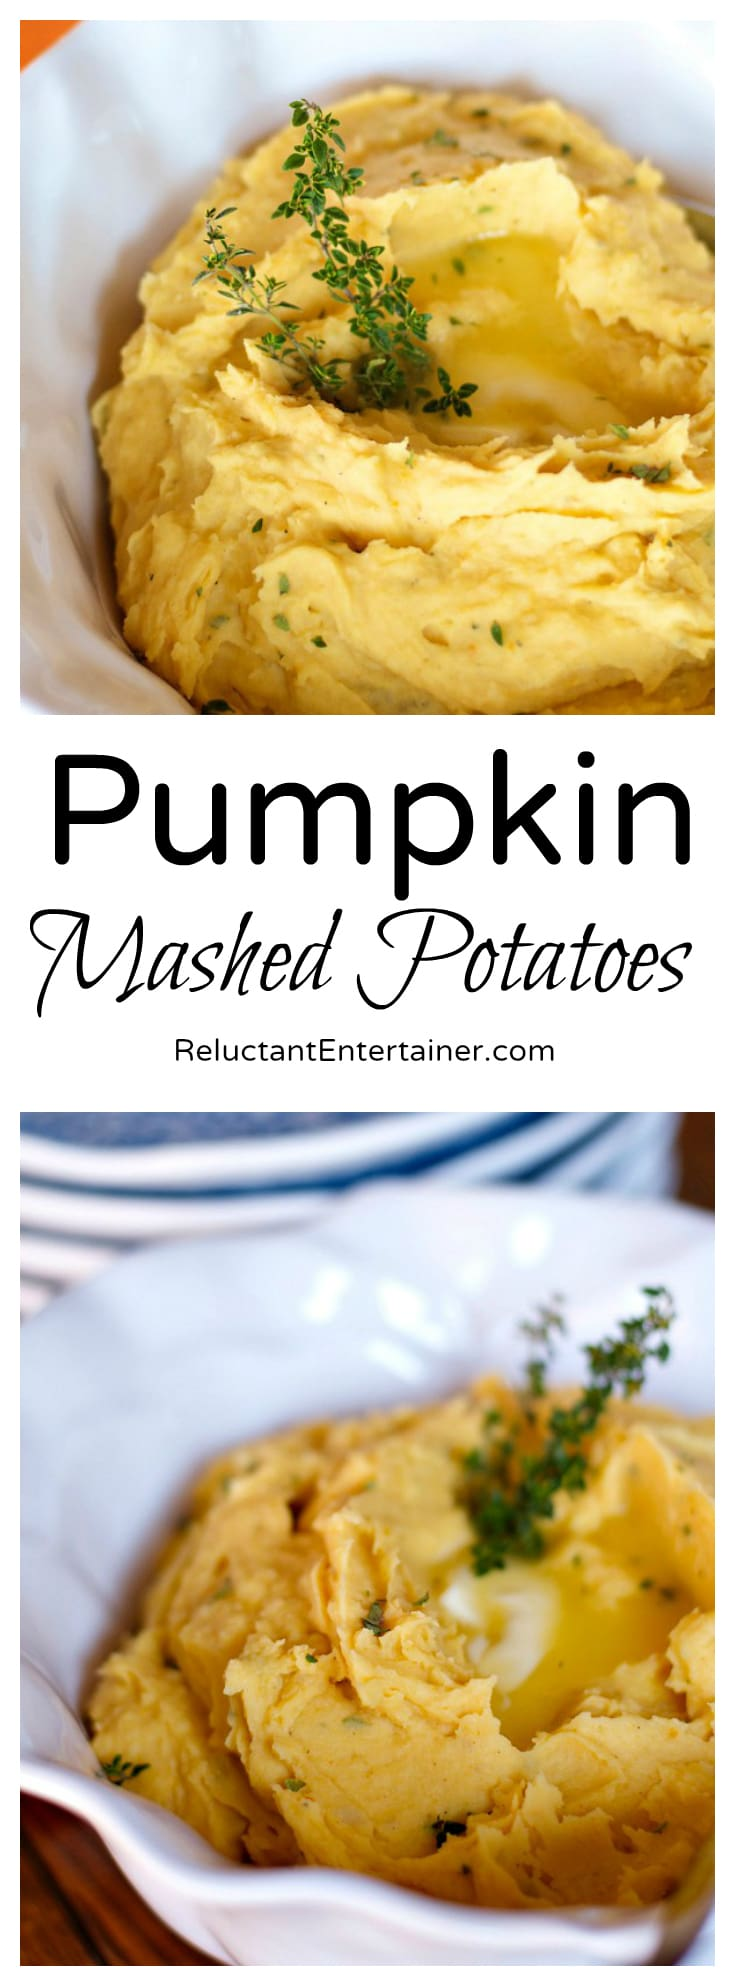 Pumpkin Mashed Potatoes | ReluctantEntertainer.com